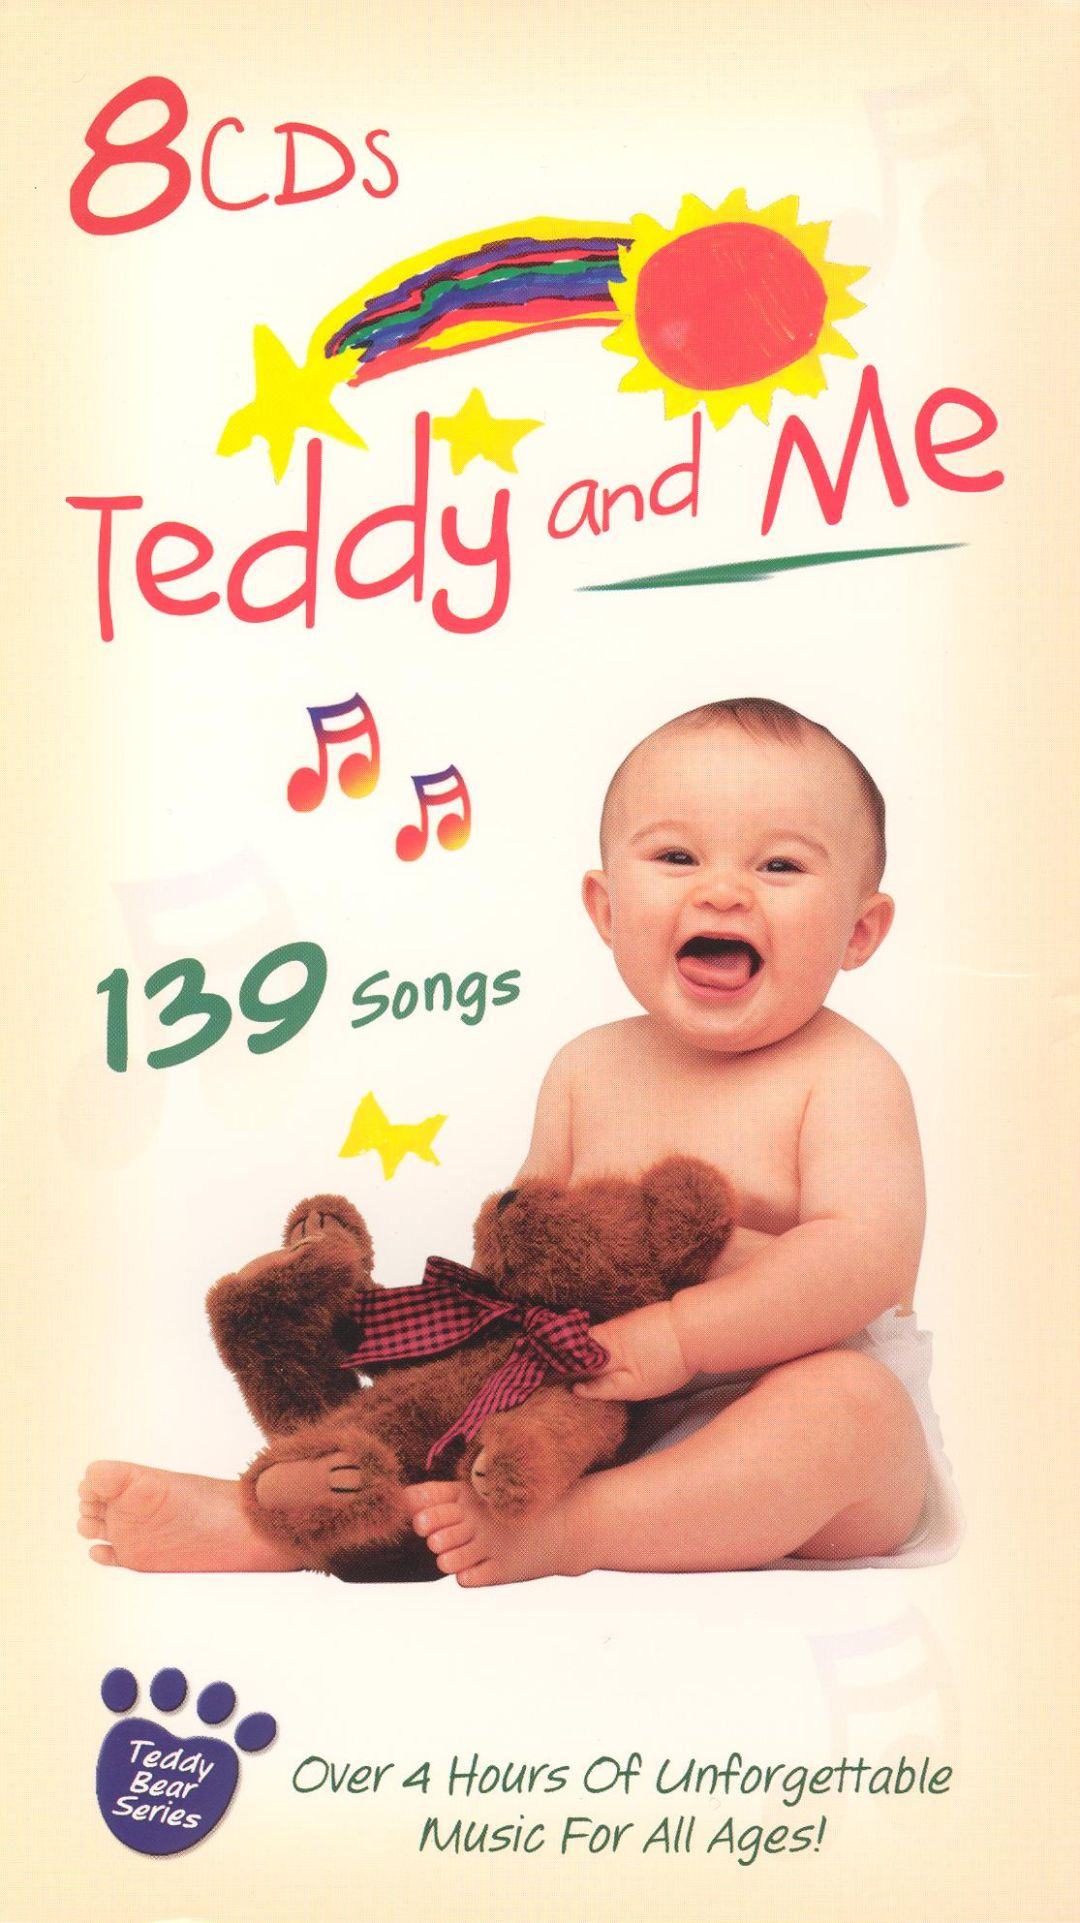 Teddy and Me [2003 Platinum Long Box]